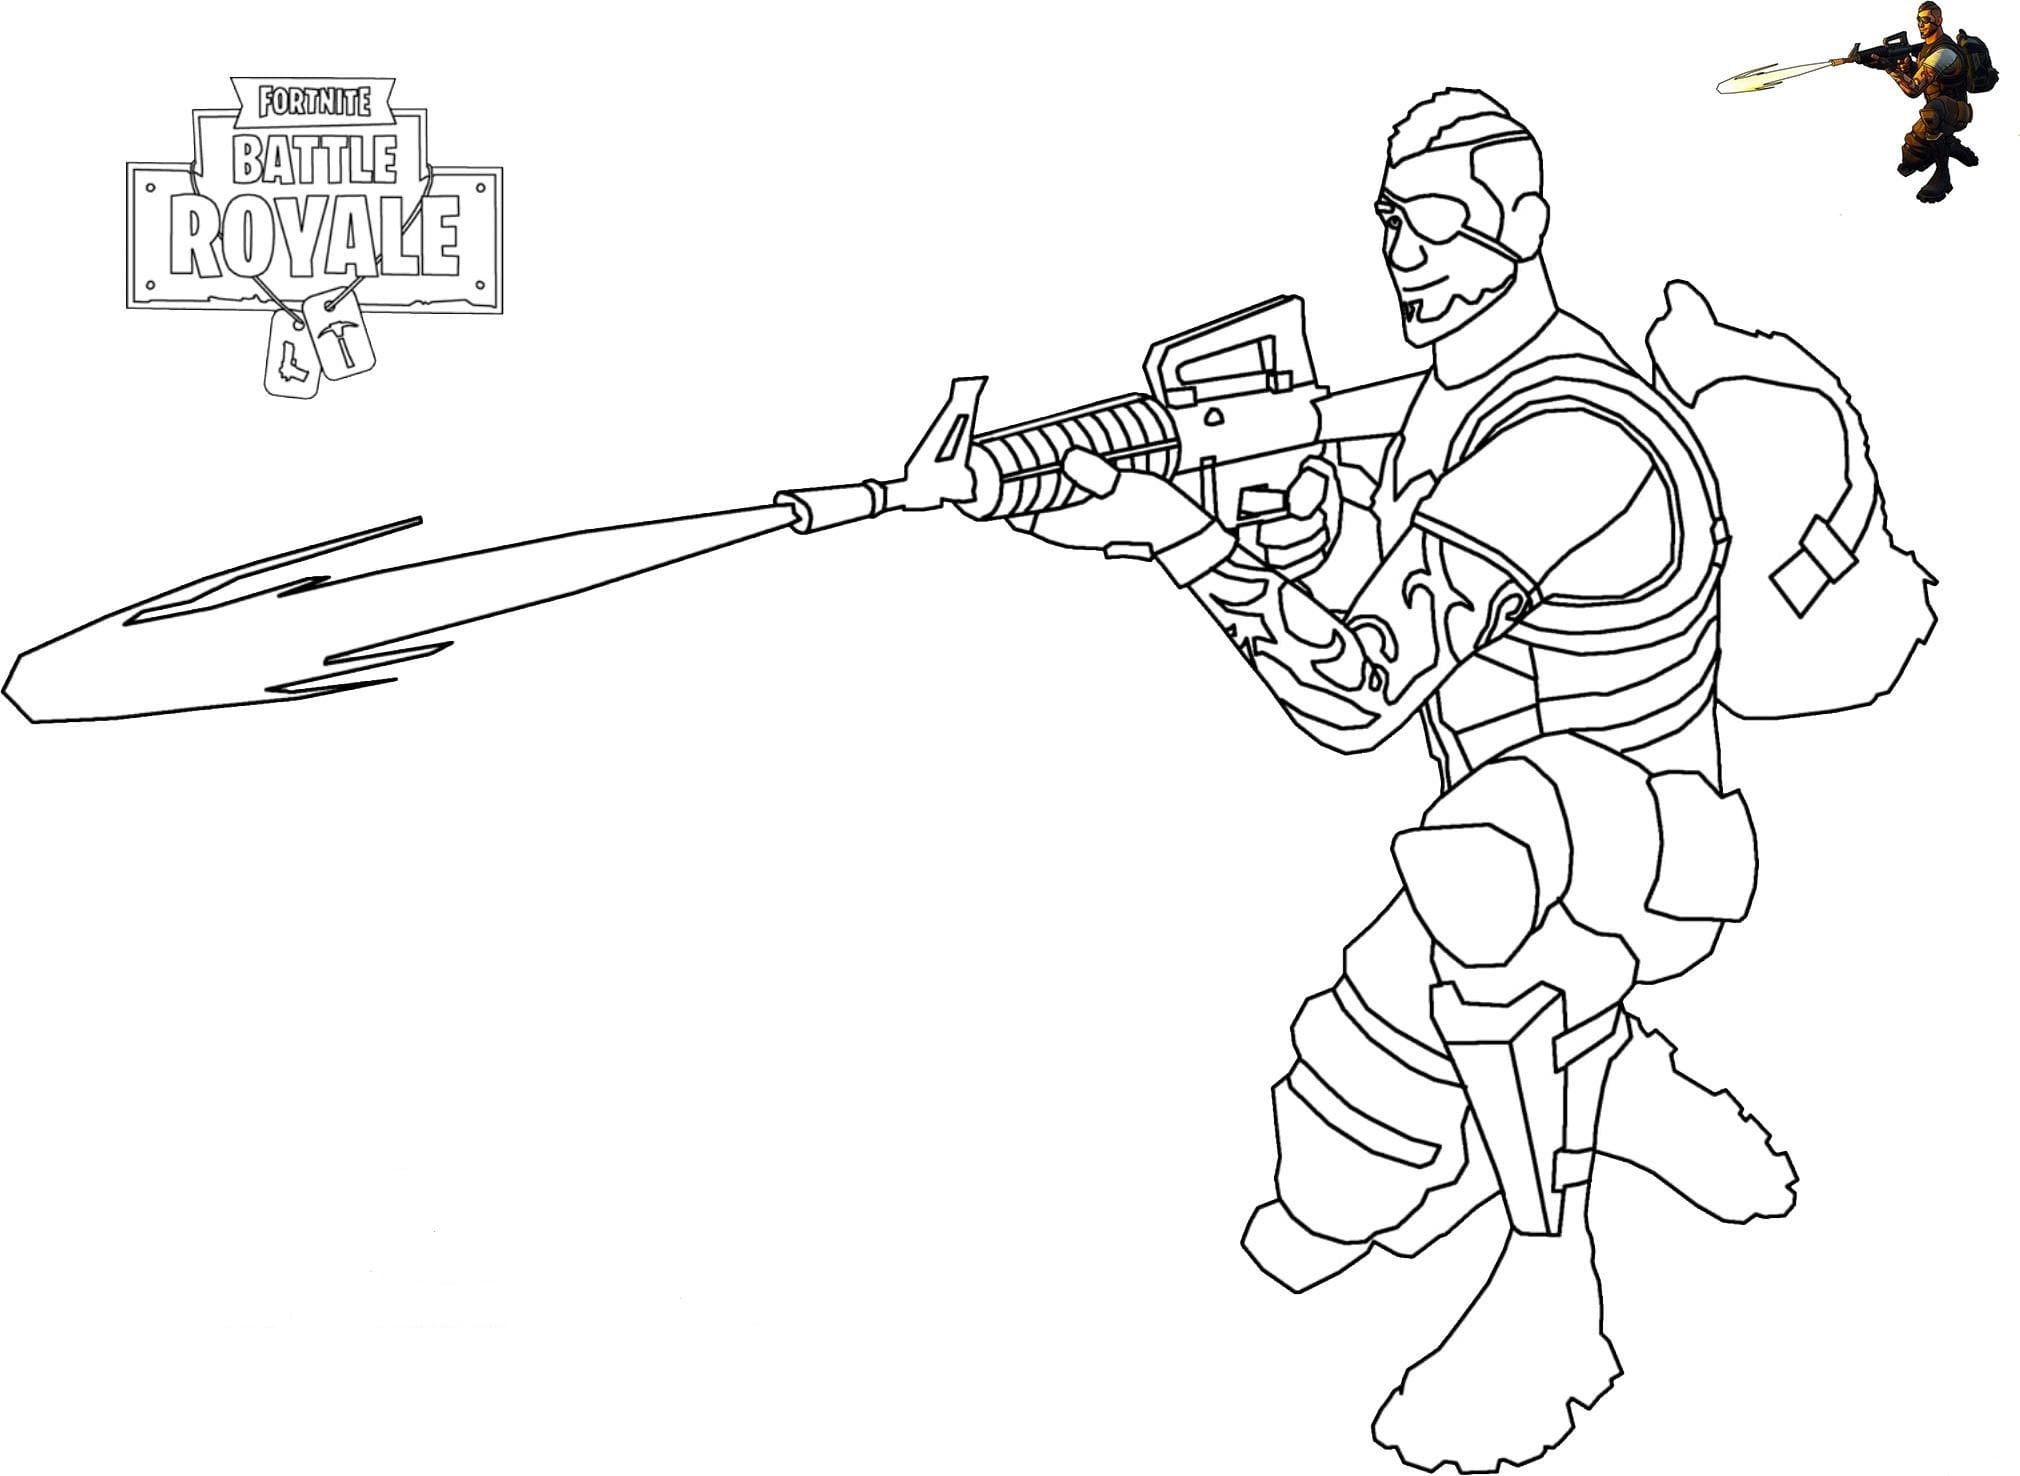 Fortnite coloring pages. Print heroes from the game for free